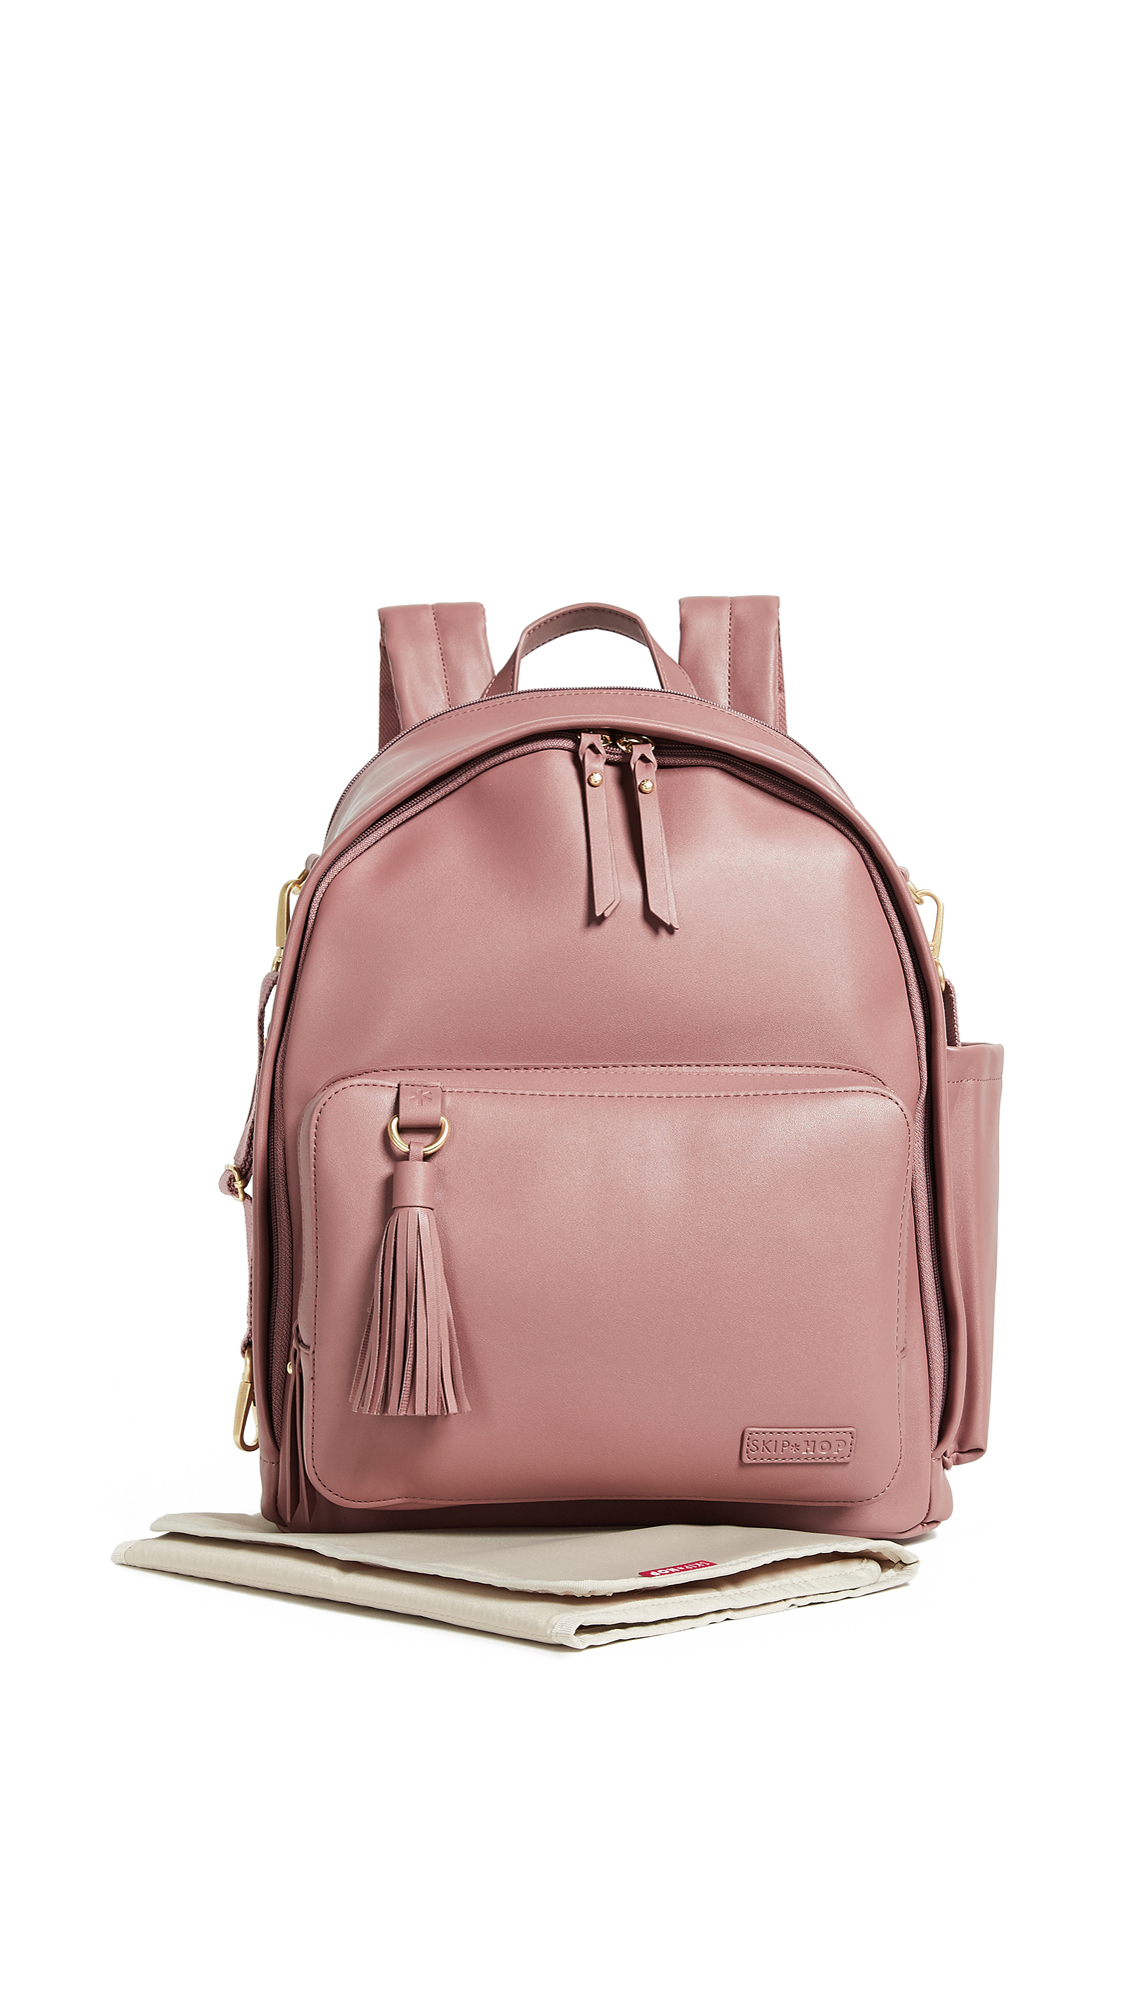 SKIP HOP Greenwich Simply Chic Diaper Backpack in Dusty Rose